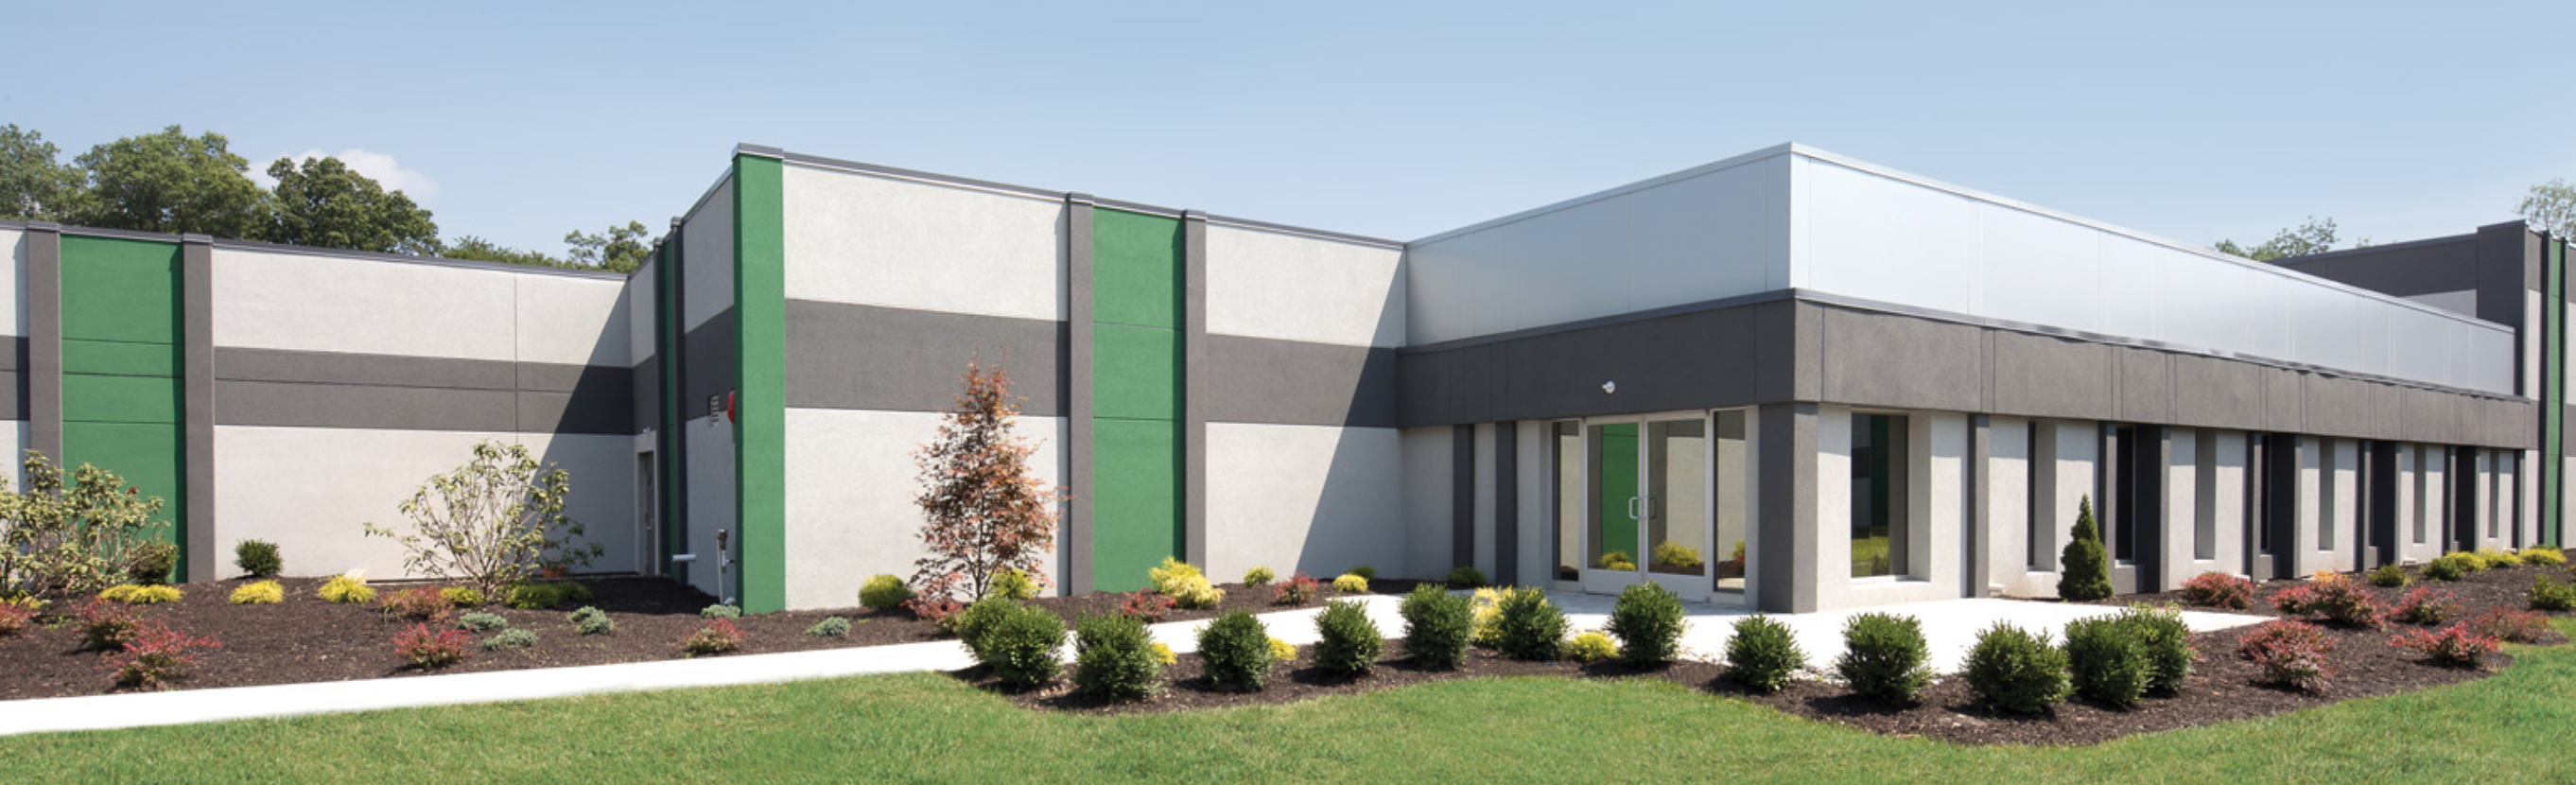 "digital rendering of self storage facility, multi level with window at building corner, sign reading ""columbia self storage"" on right side of the building"